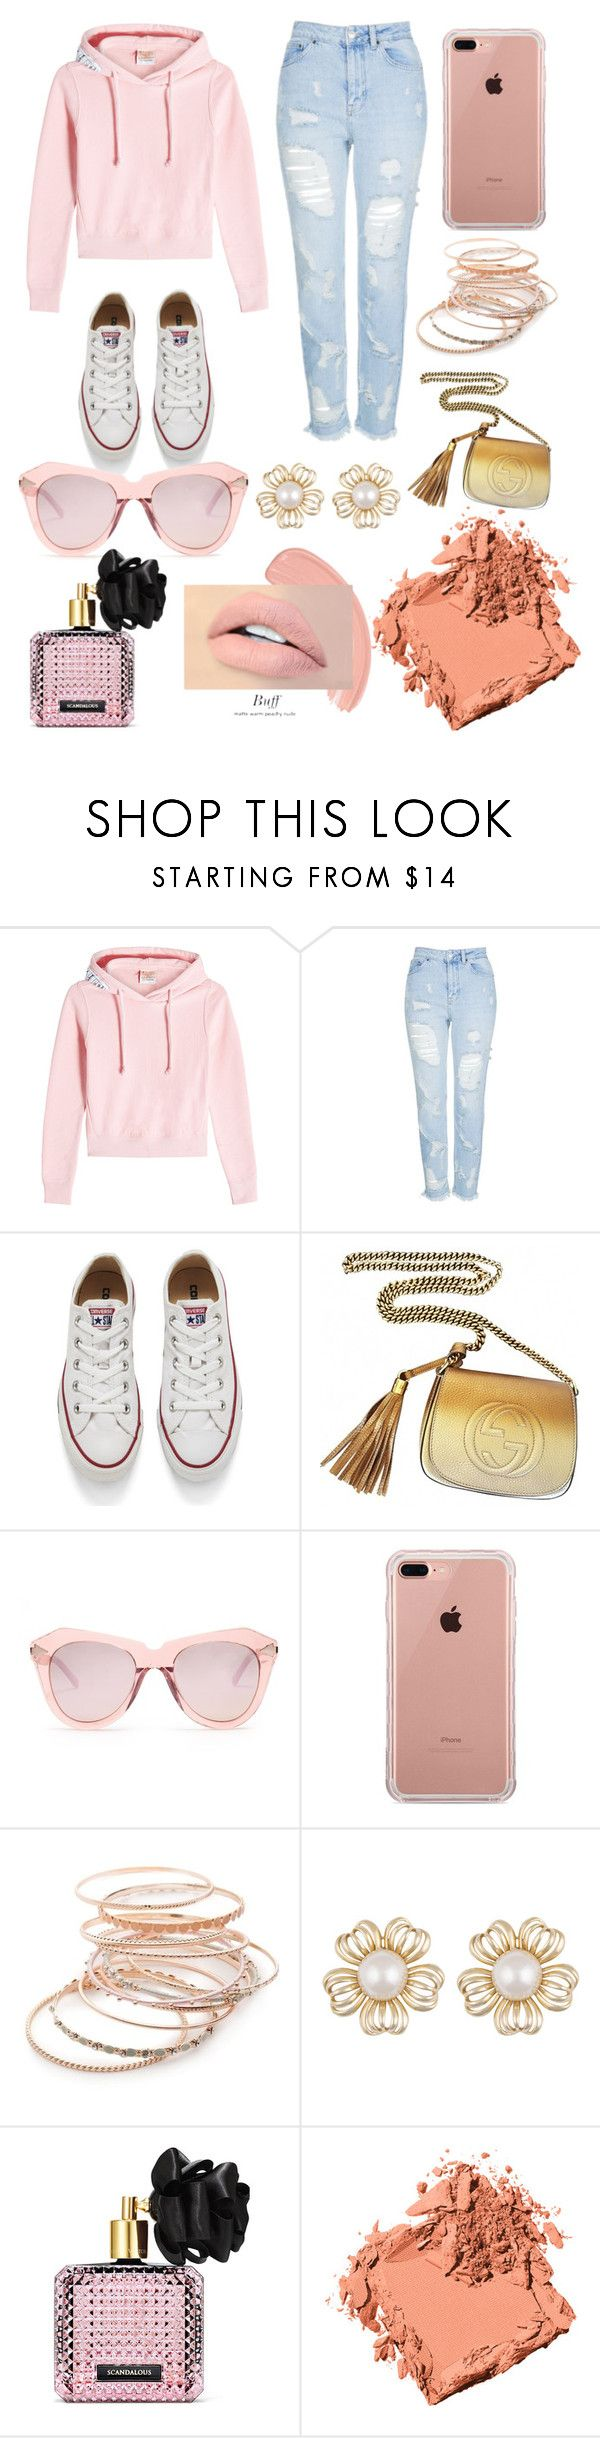 """""""Chill Trend!!!"""" by alexisbella ❤ liked on Polyvore featuring Vetements, Topshop, Converse, Gucci, Karen Walker, Belkin, Red Camel, Victoria's Secret and Bobbi Brown Cosmetics"""